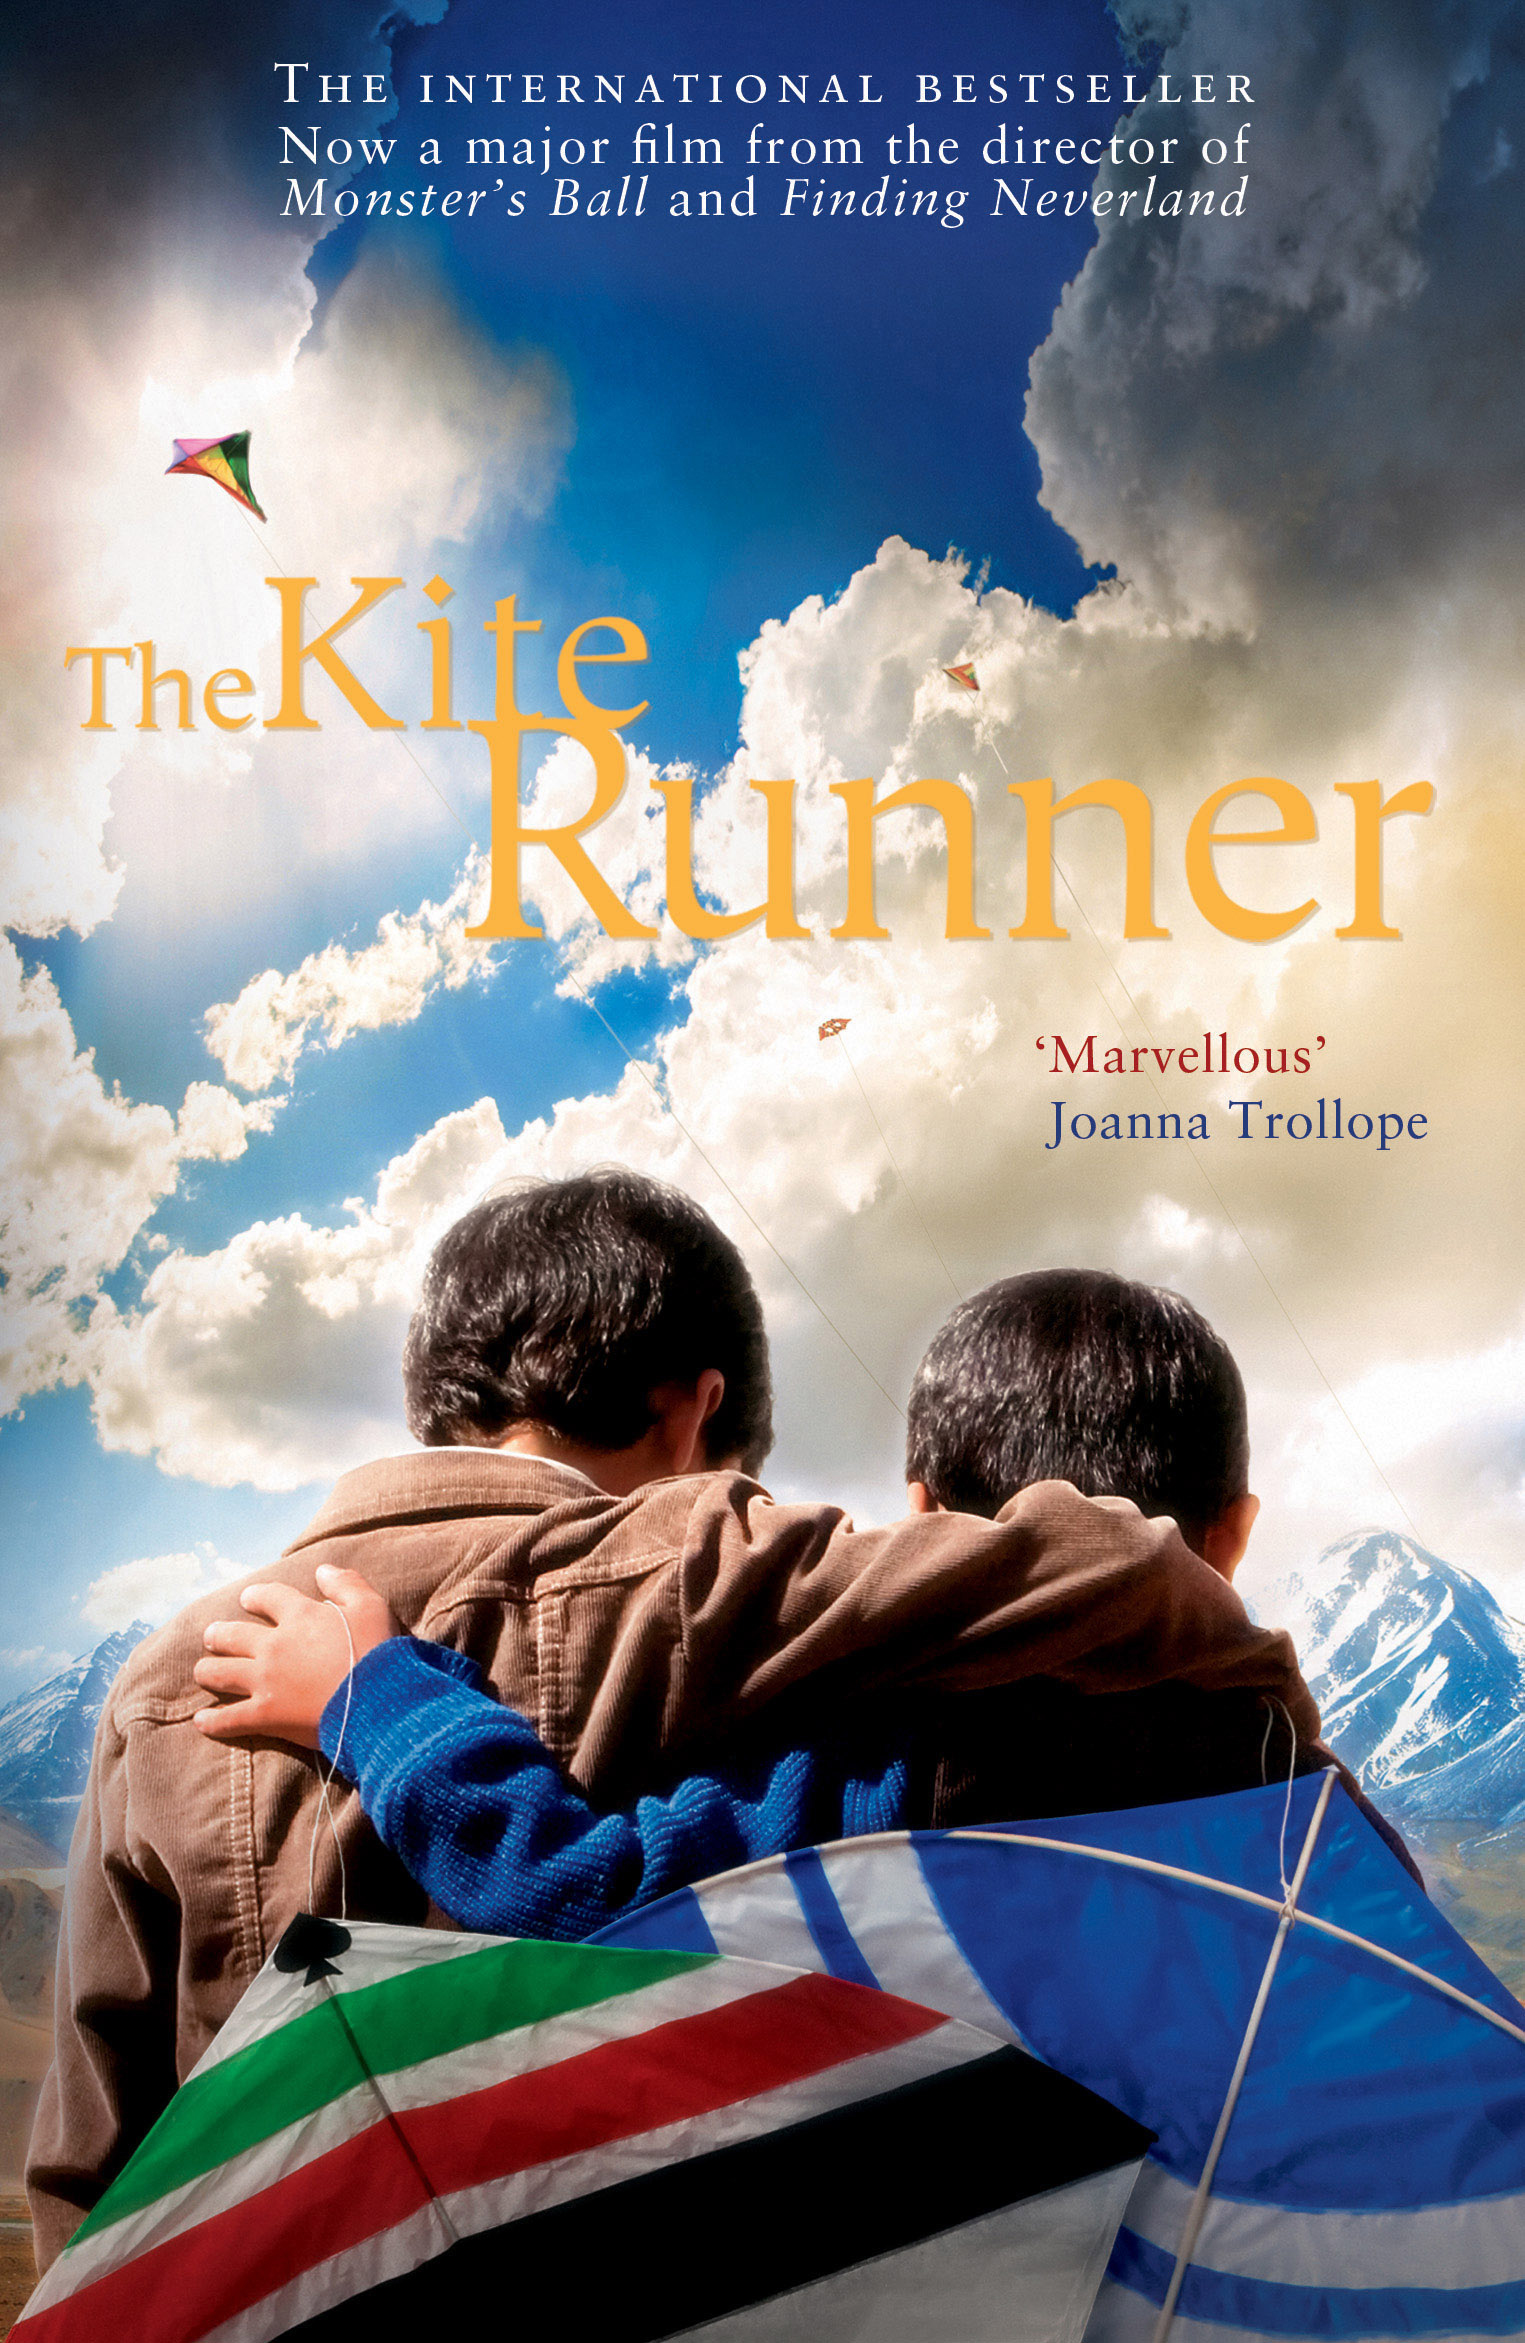 kite runner film tie in khaled hosseini allen cover